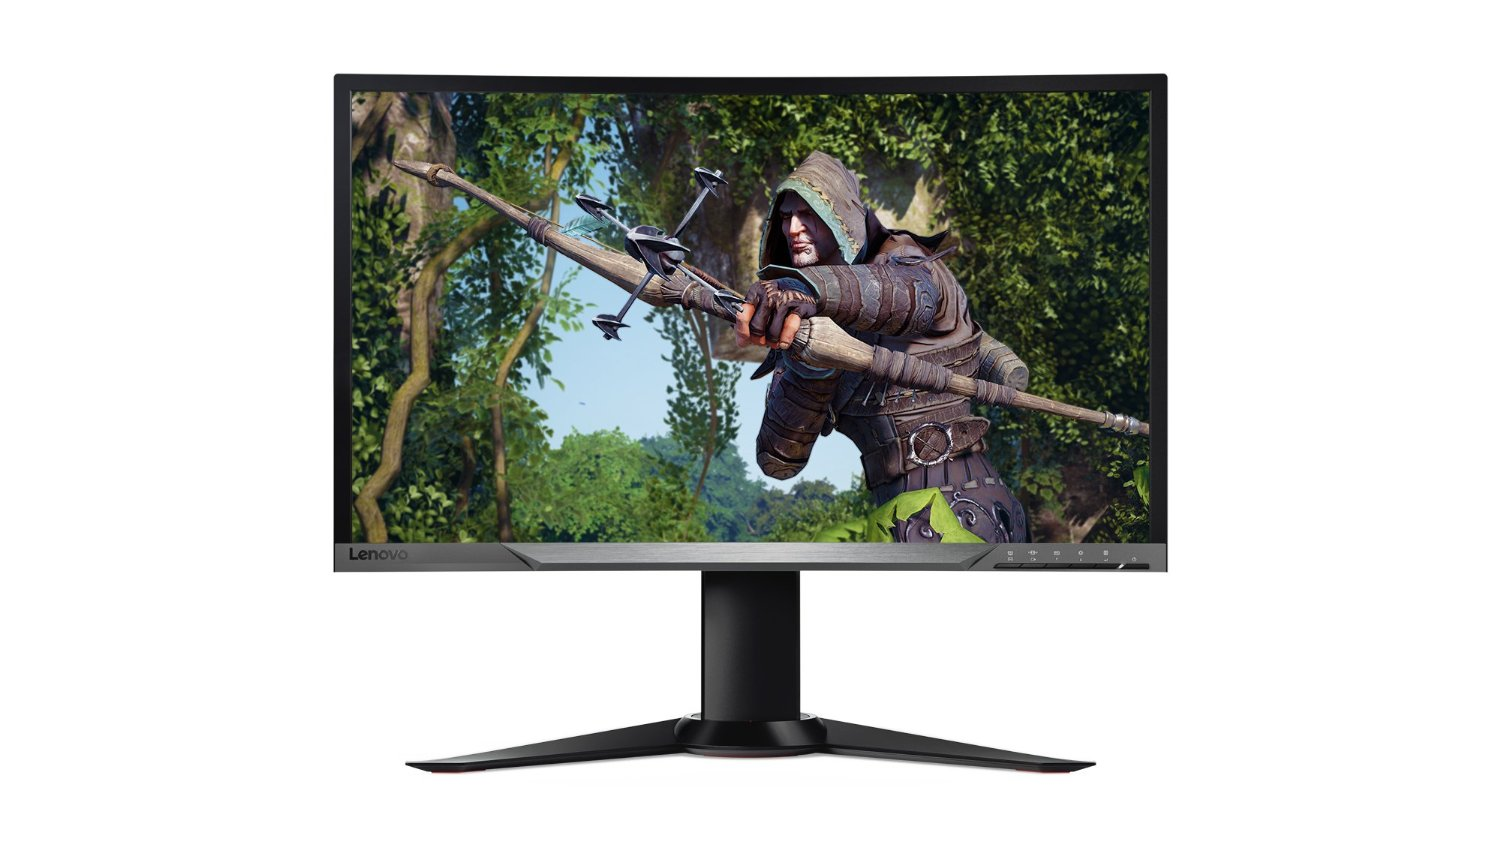 Lenovo Y27f Curved Gaming Monitor